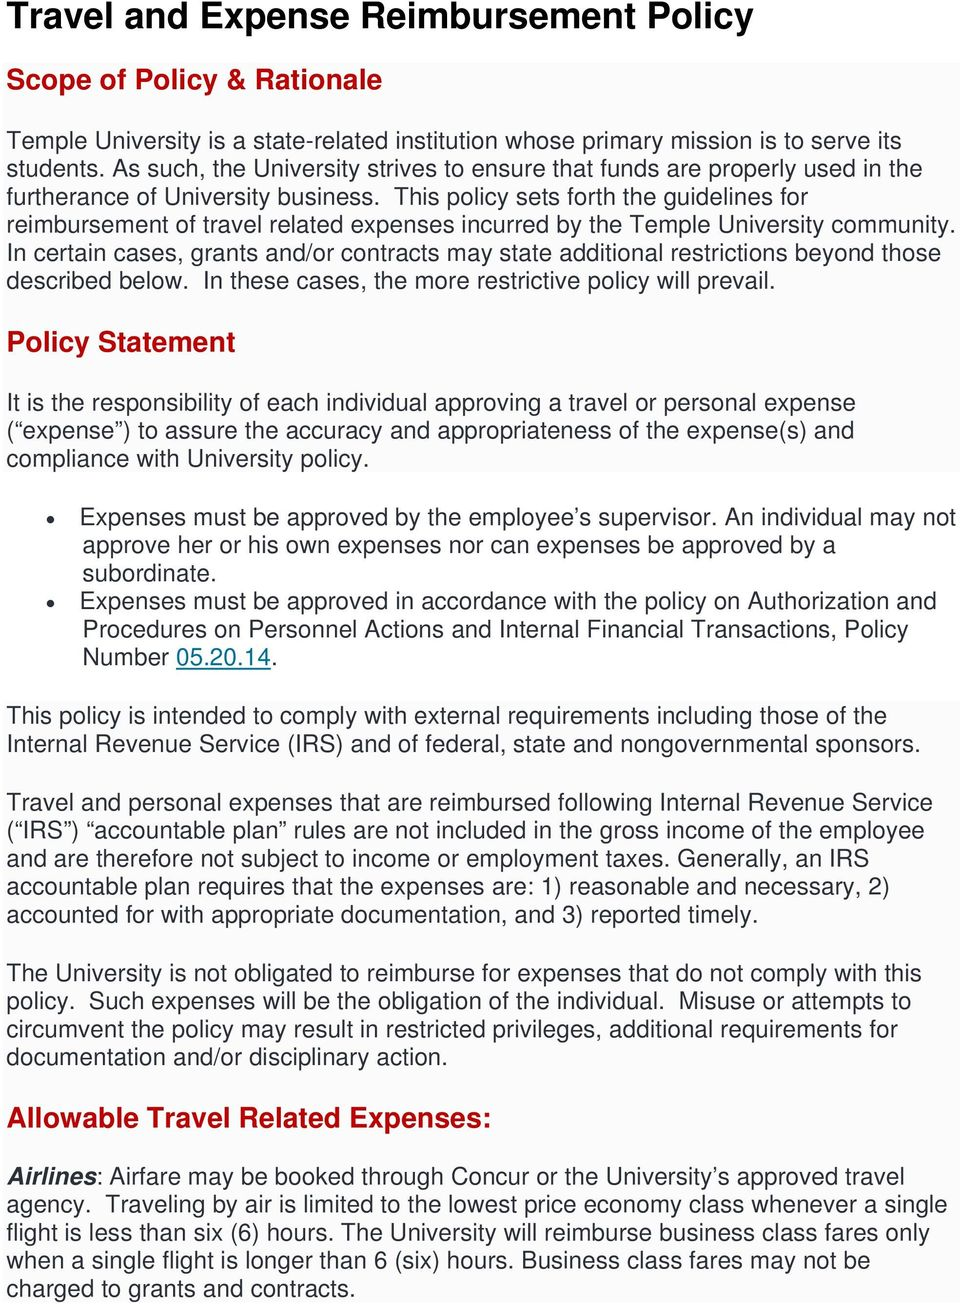 This policy sets forth the guidelines for reimbursement of travel related expenses incurred by the Temple University community.